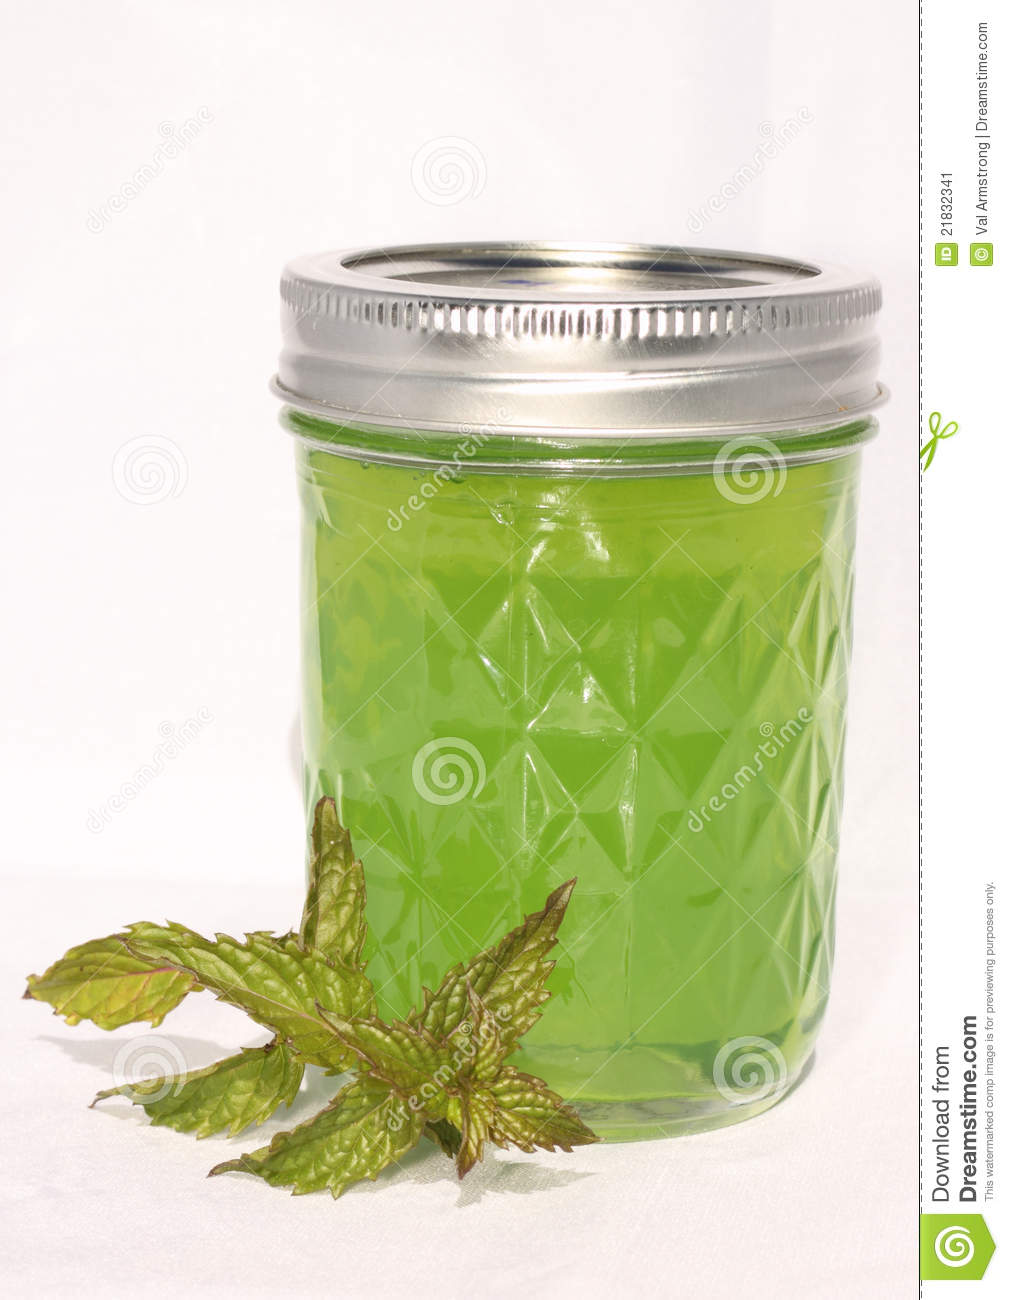 Mint jelly with a mint leaf. Home canning and preservation image in ...